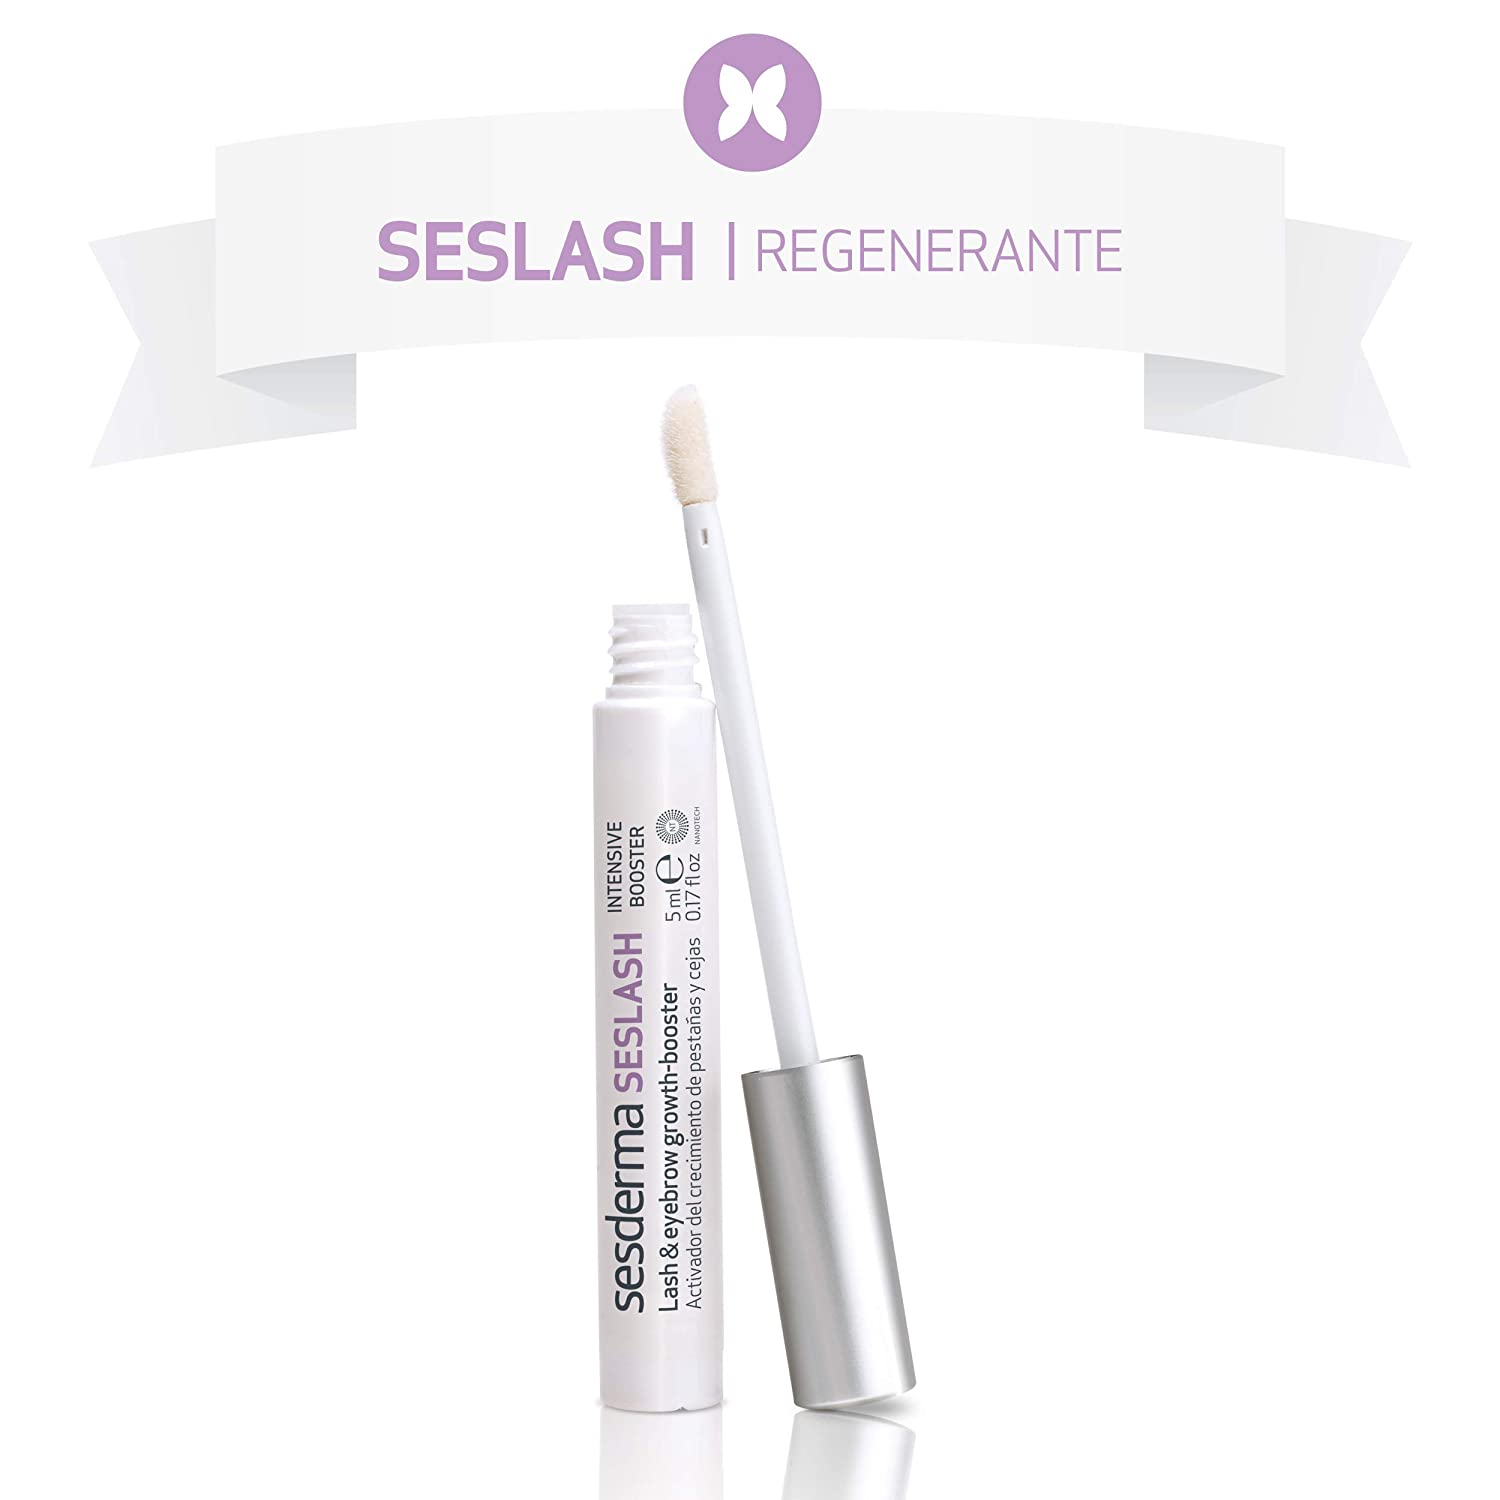 Sesderma Seslash lash and eyebrow growth-booster 5 ml/.17 fl oz 8429979419491